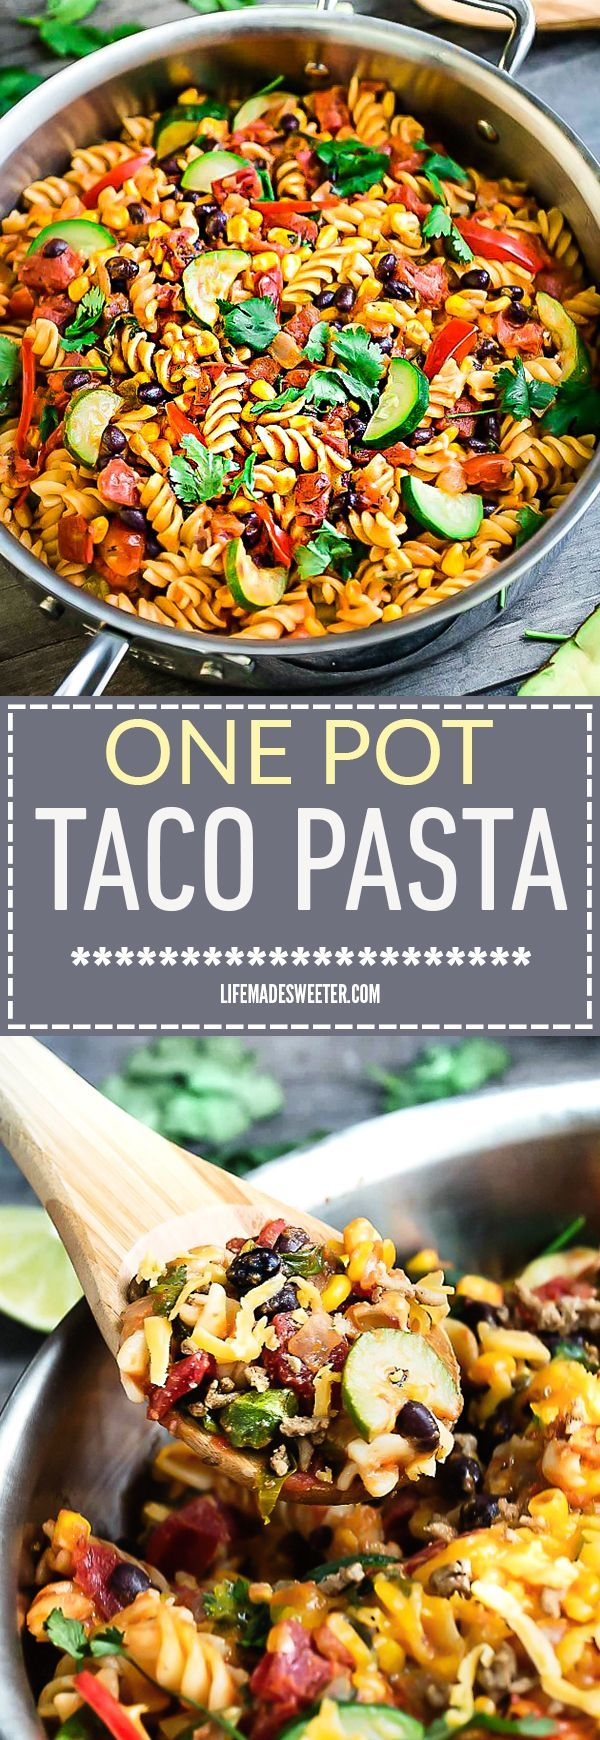 One Pot Taco Pasta Skillet makes the perfect easy weeknight meal.  delicious and easy Best of all, everything cooks up in just ONE PAN, even the pasta. Made with all your favorite taco flavors cooked and so simple to customize with your favorite vegetable